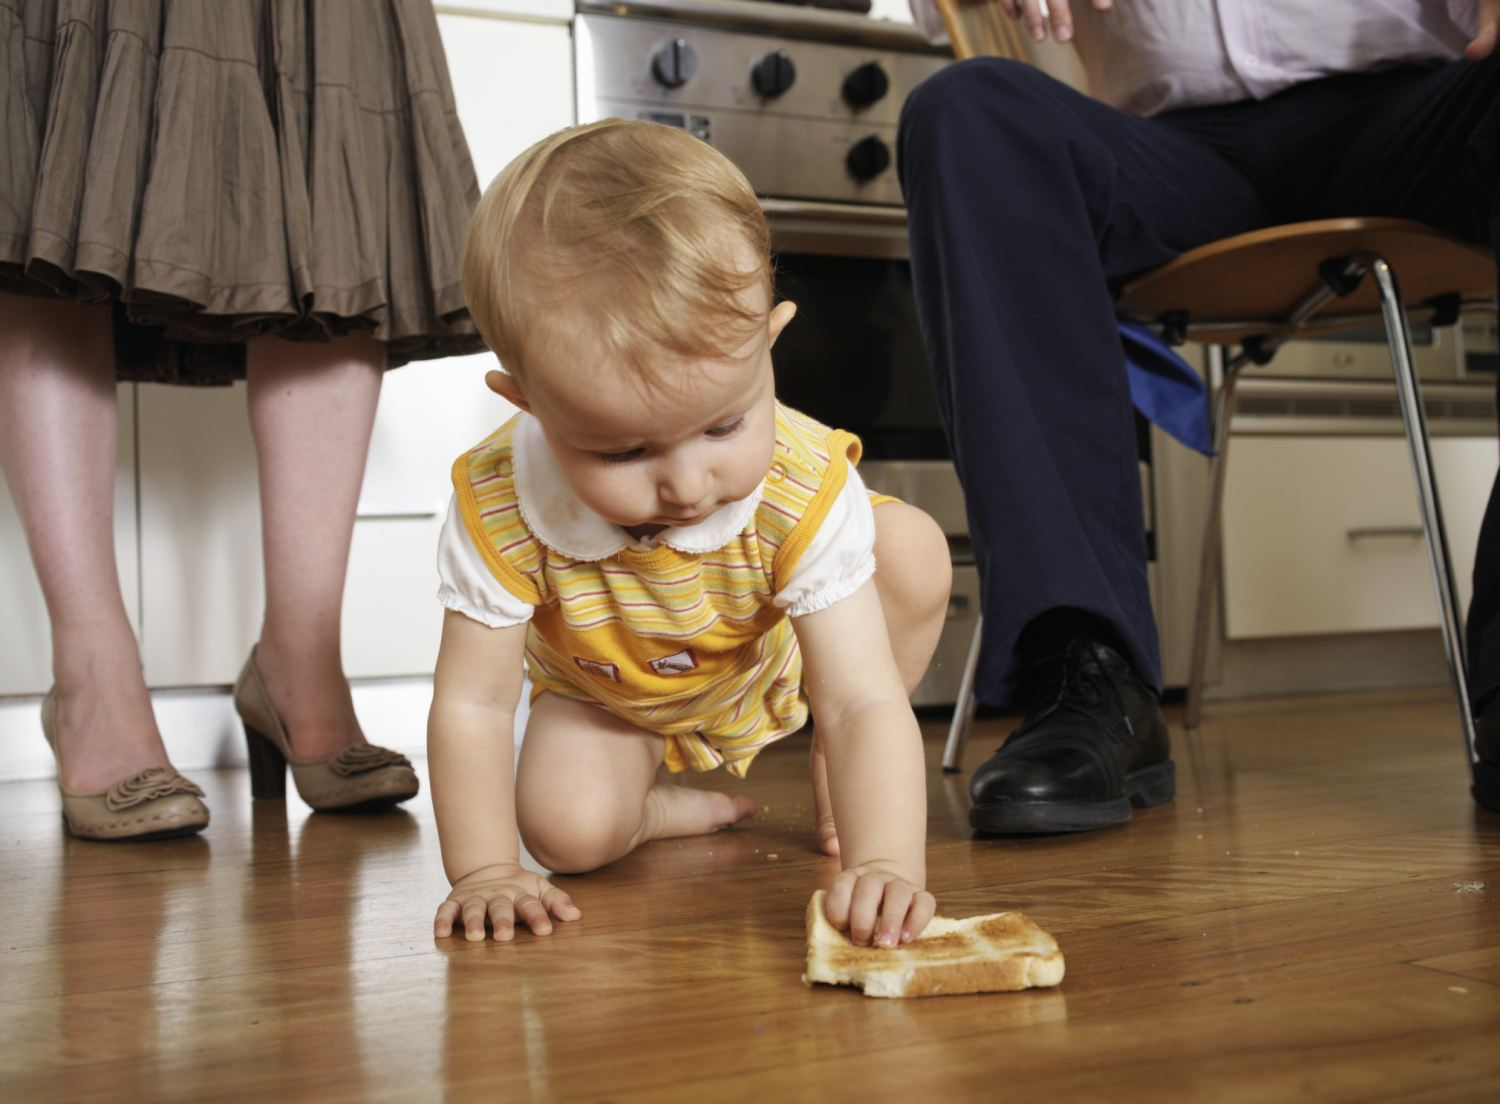 Baby With Food on Floor